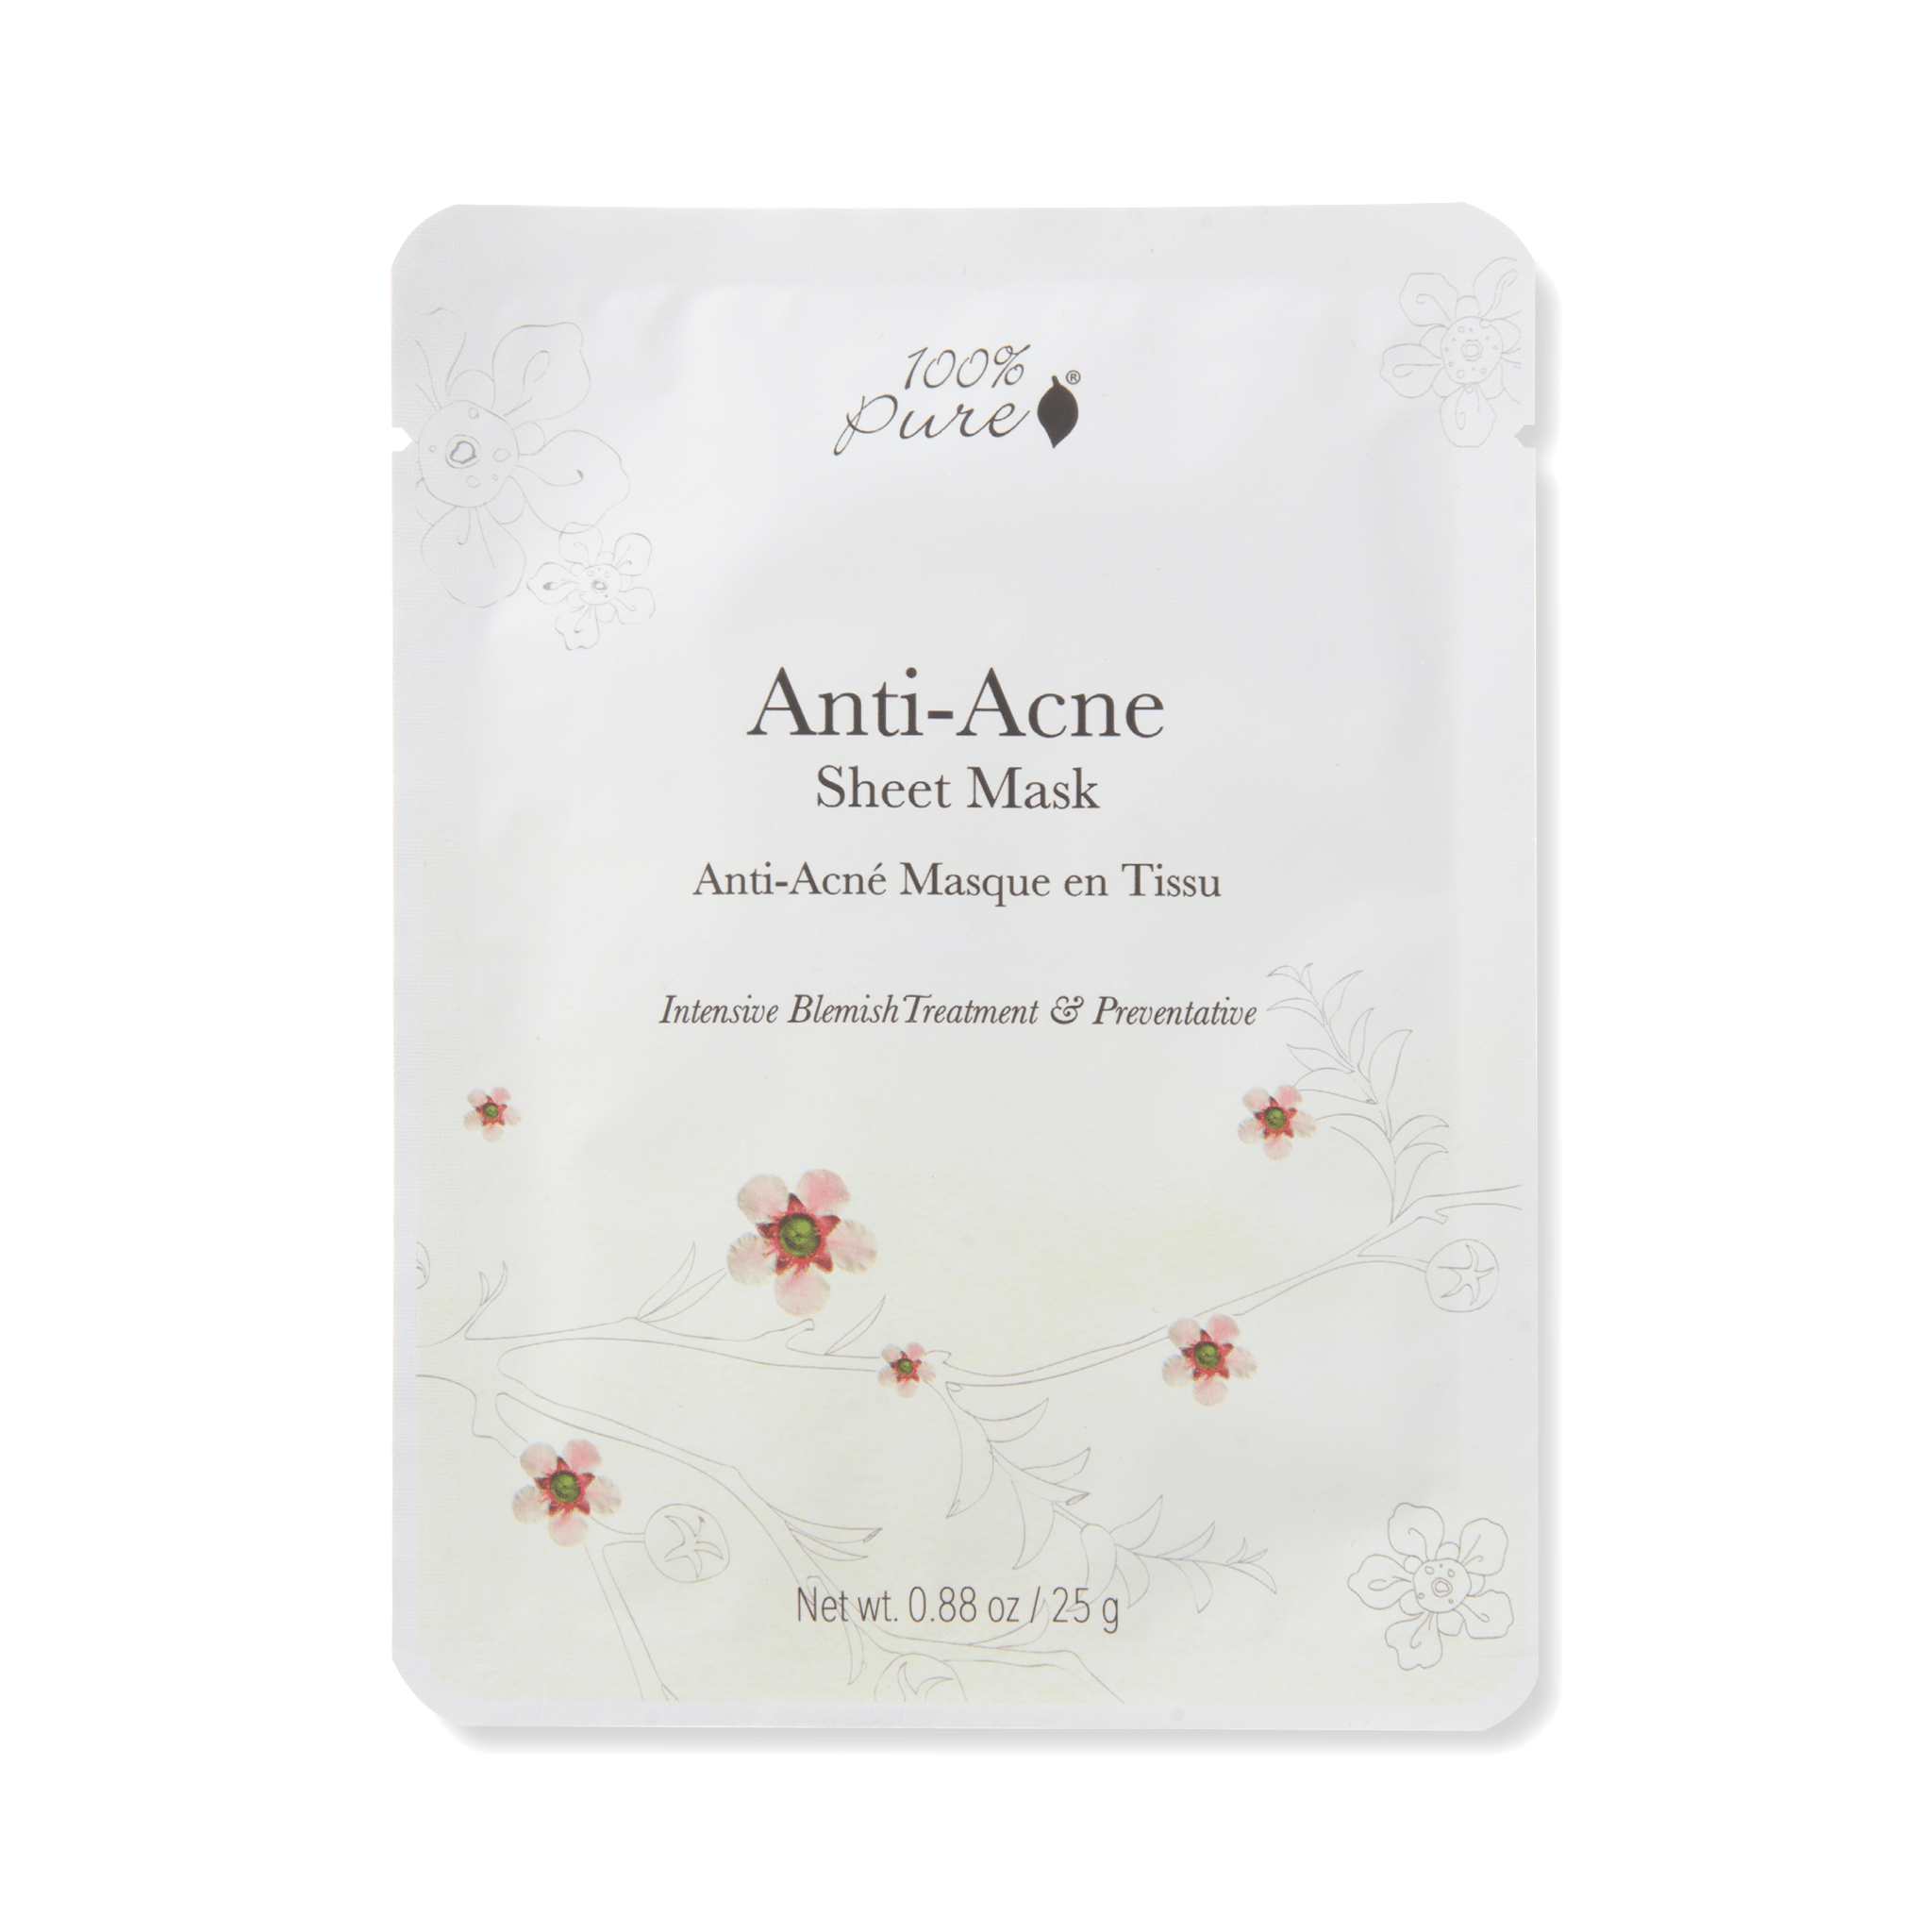 Anti Acne Sheet Mask.